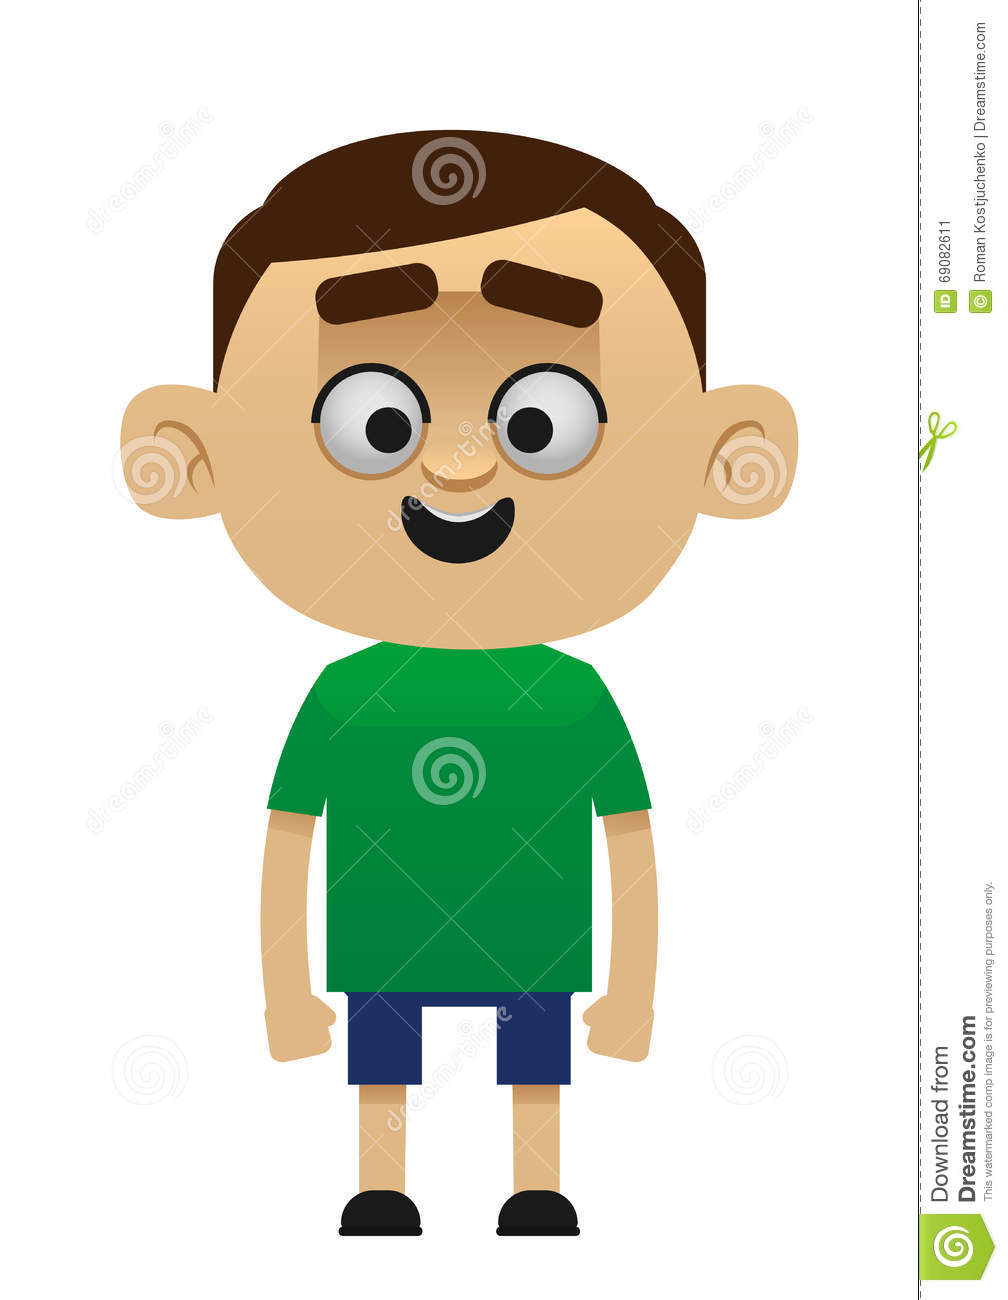 Male Cartoon Character Happy Child Stock Vector - Image: 69082611